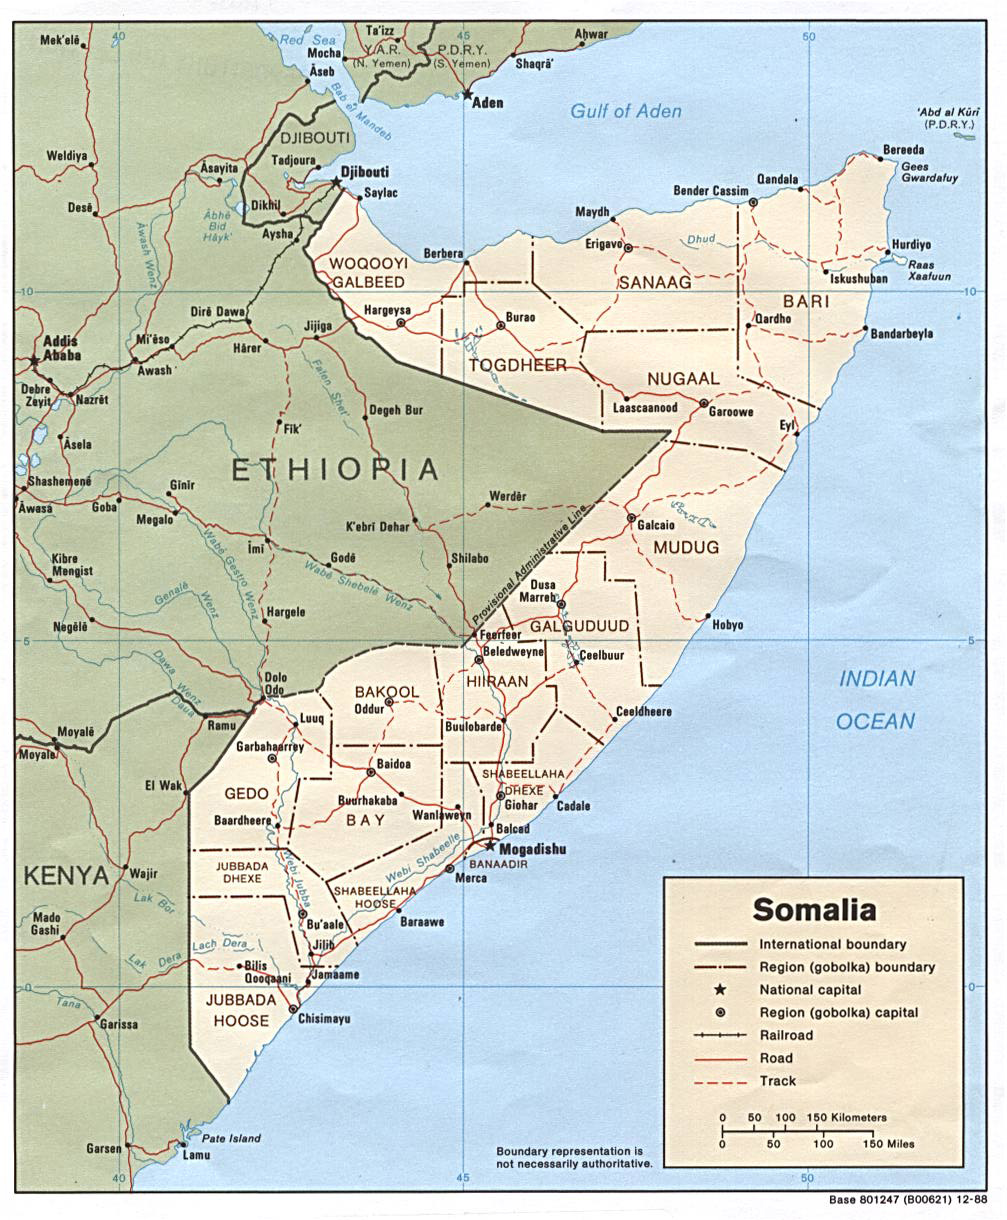 Detailed political and administrative map of Somalia Somalia detailed politi